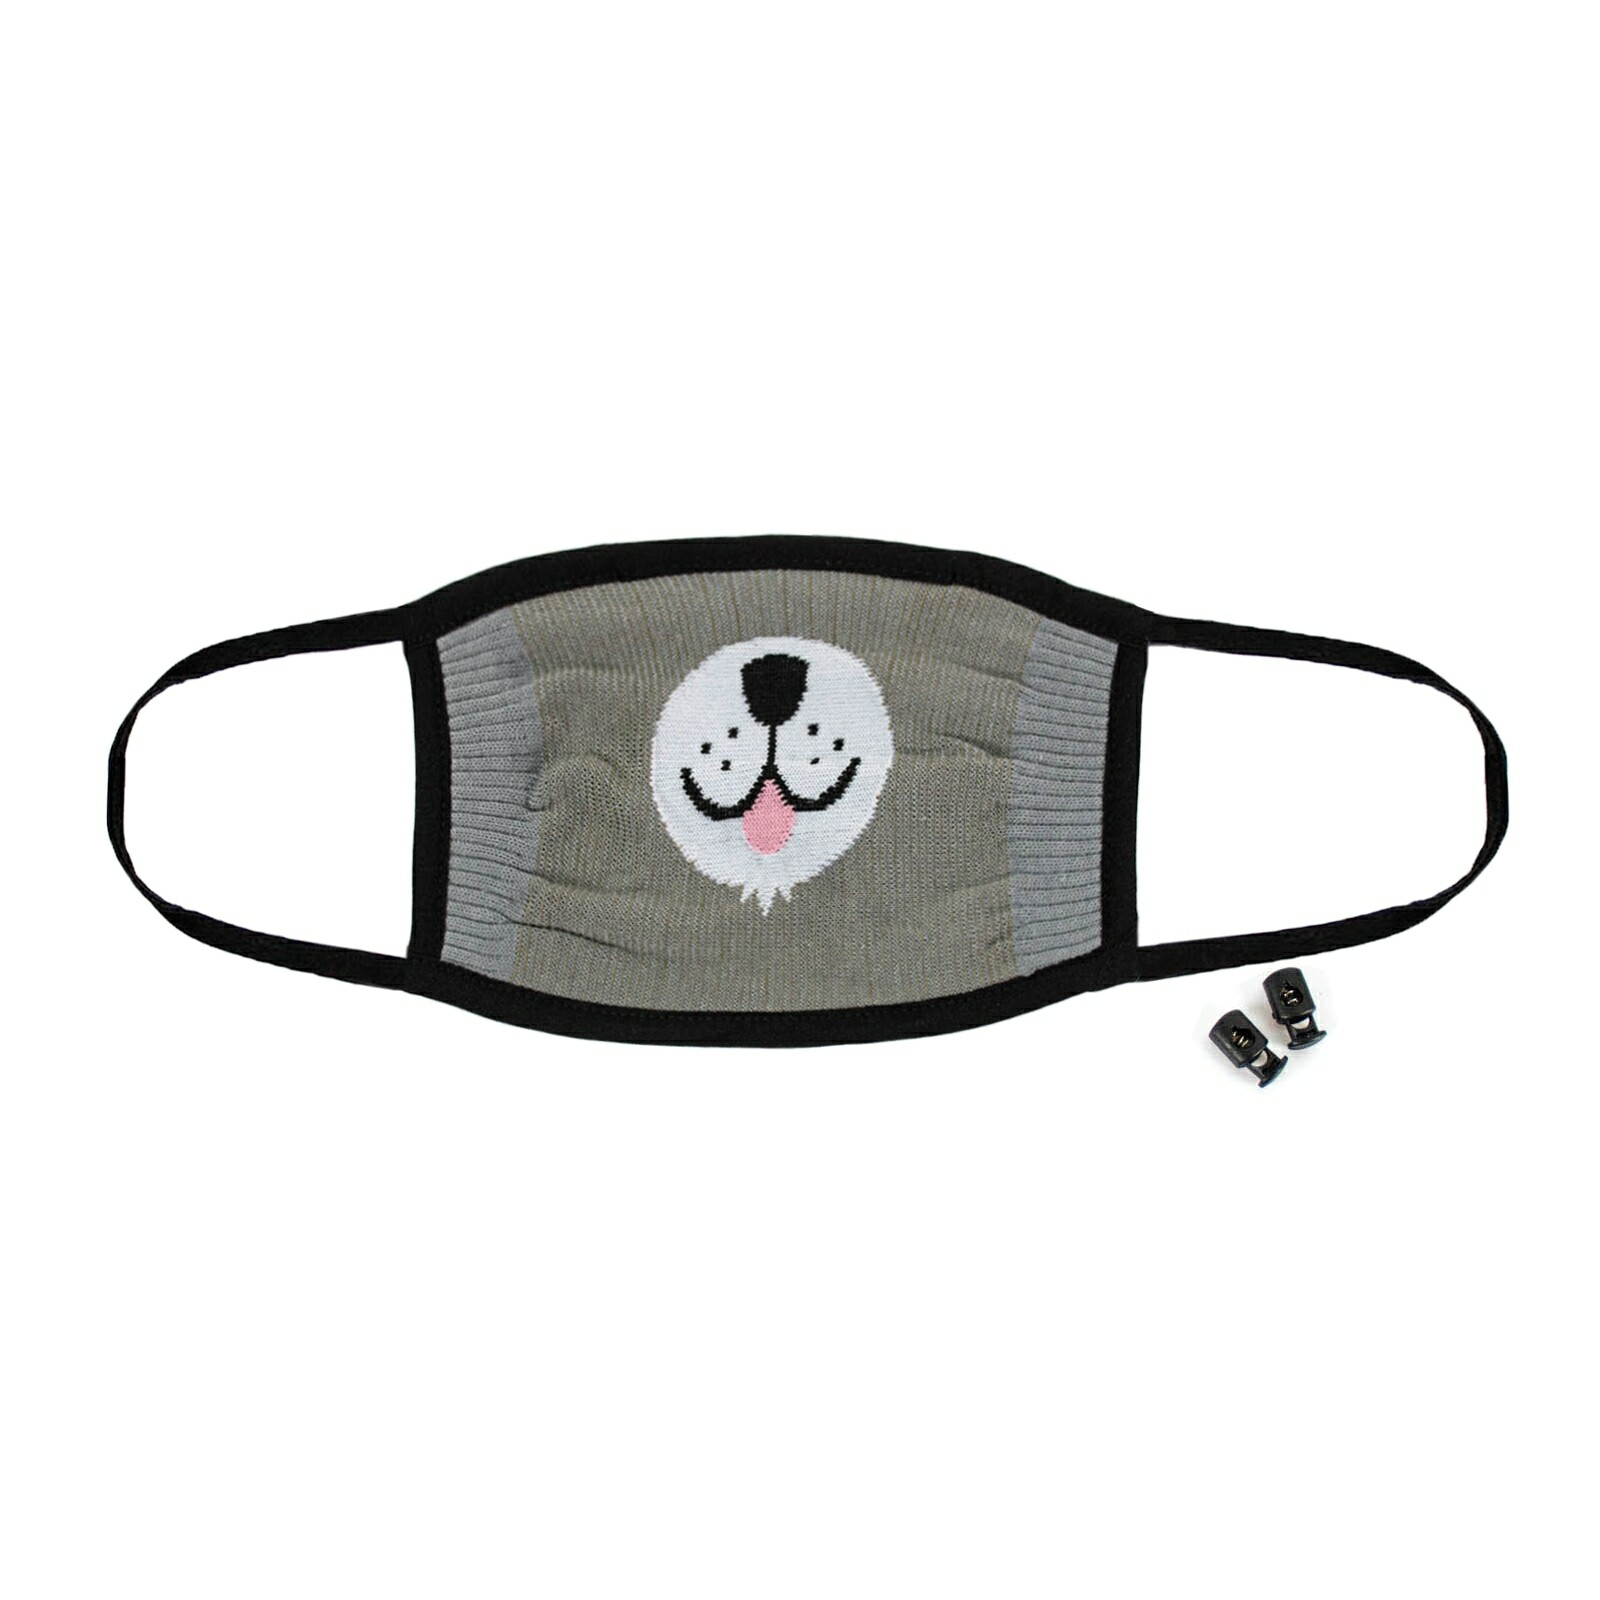 Furry Sidekick - Cute Animal Face Masks Grey - Unisex in Grey